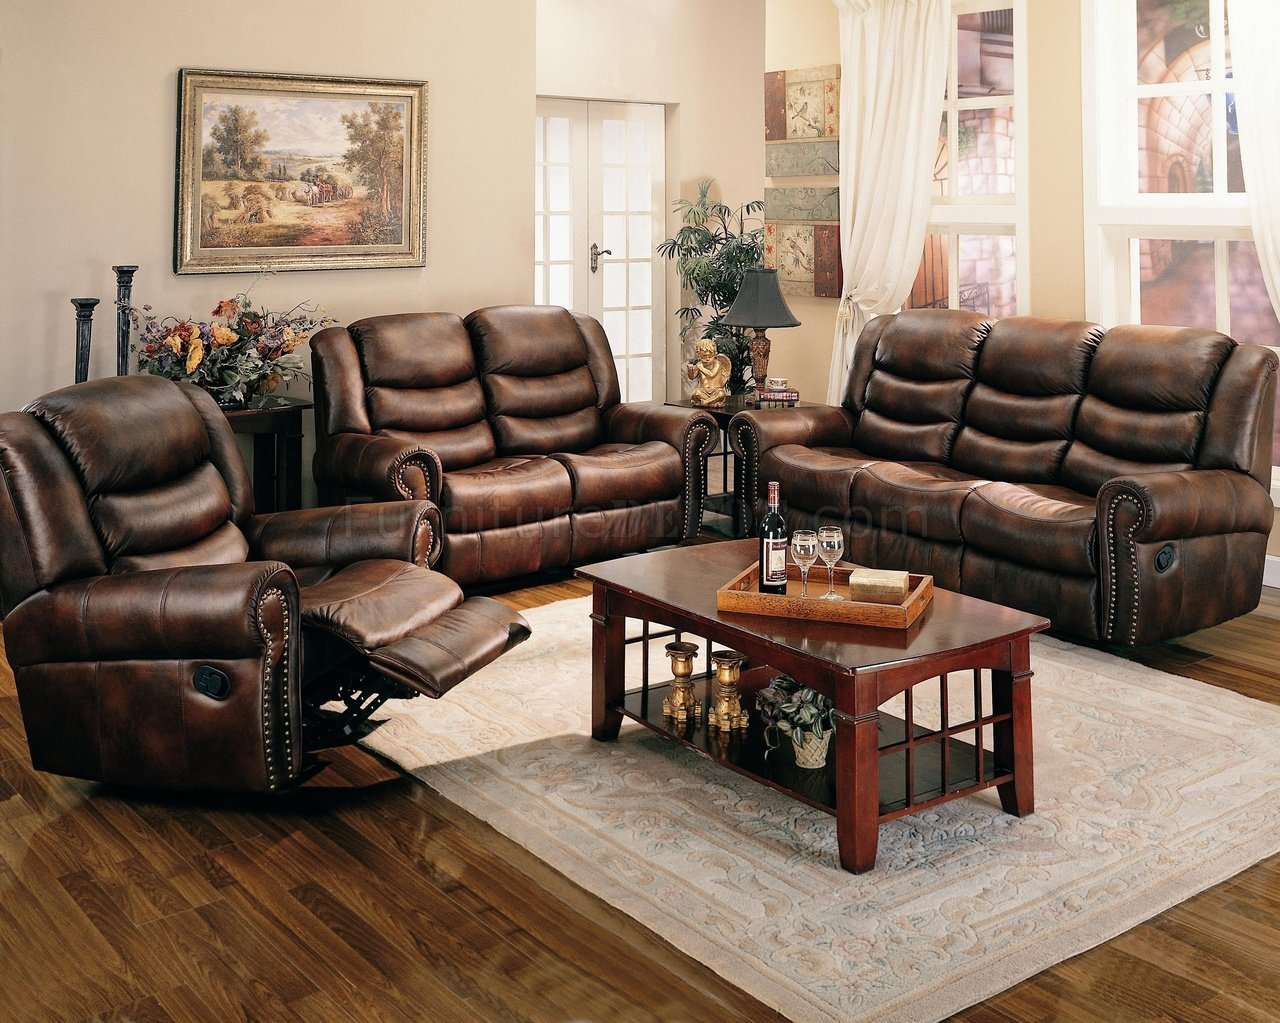 living room arrangements with sectionals couch and four chairs brown leather like fabric reclining sofa w/options